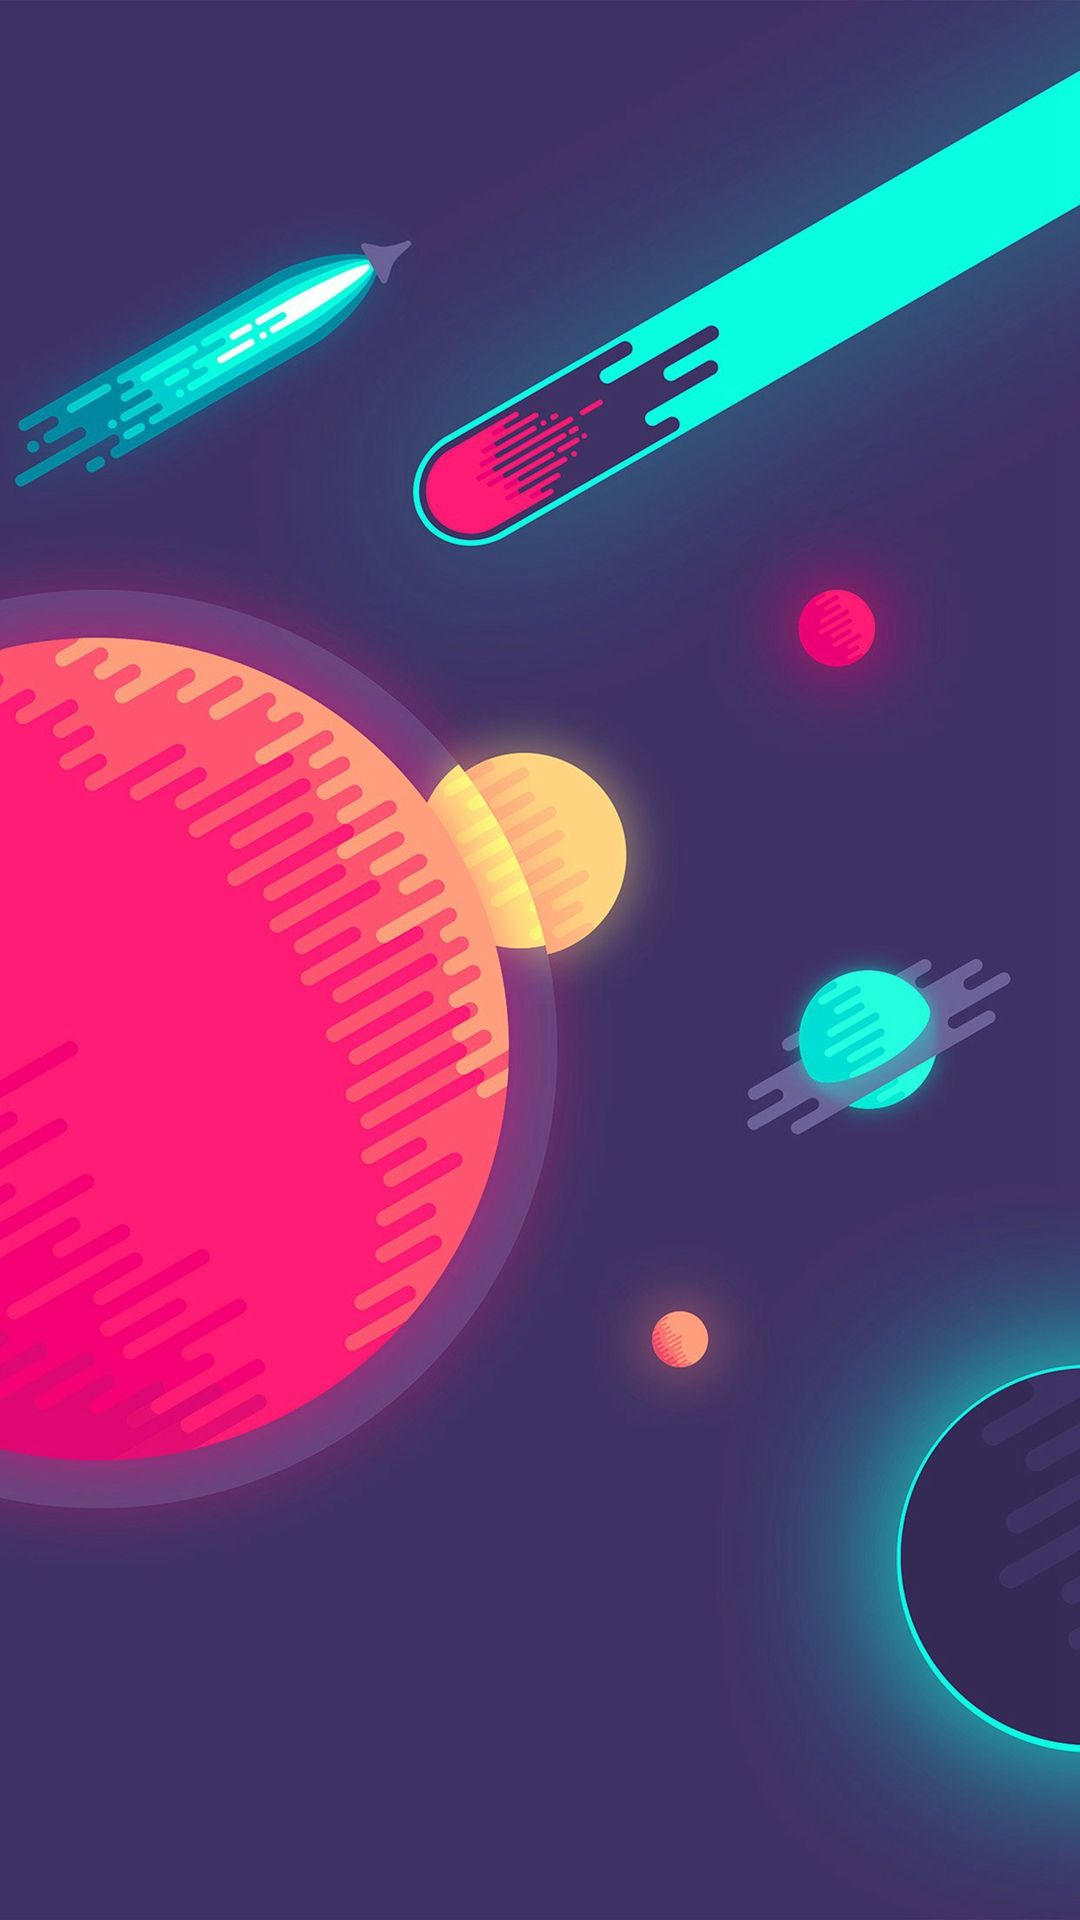 Space Minimal Art Illustration iPhone 6 plus wallpaper